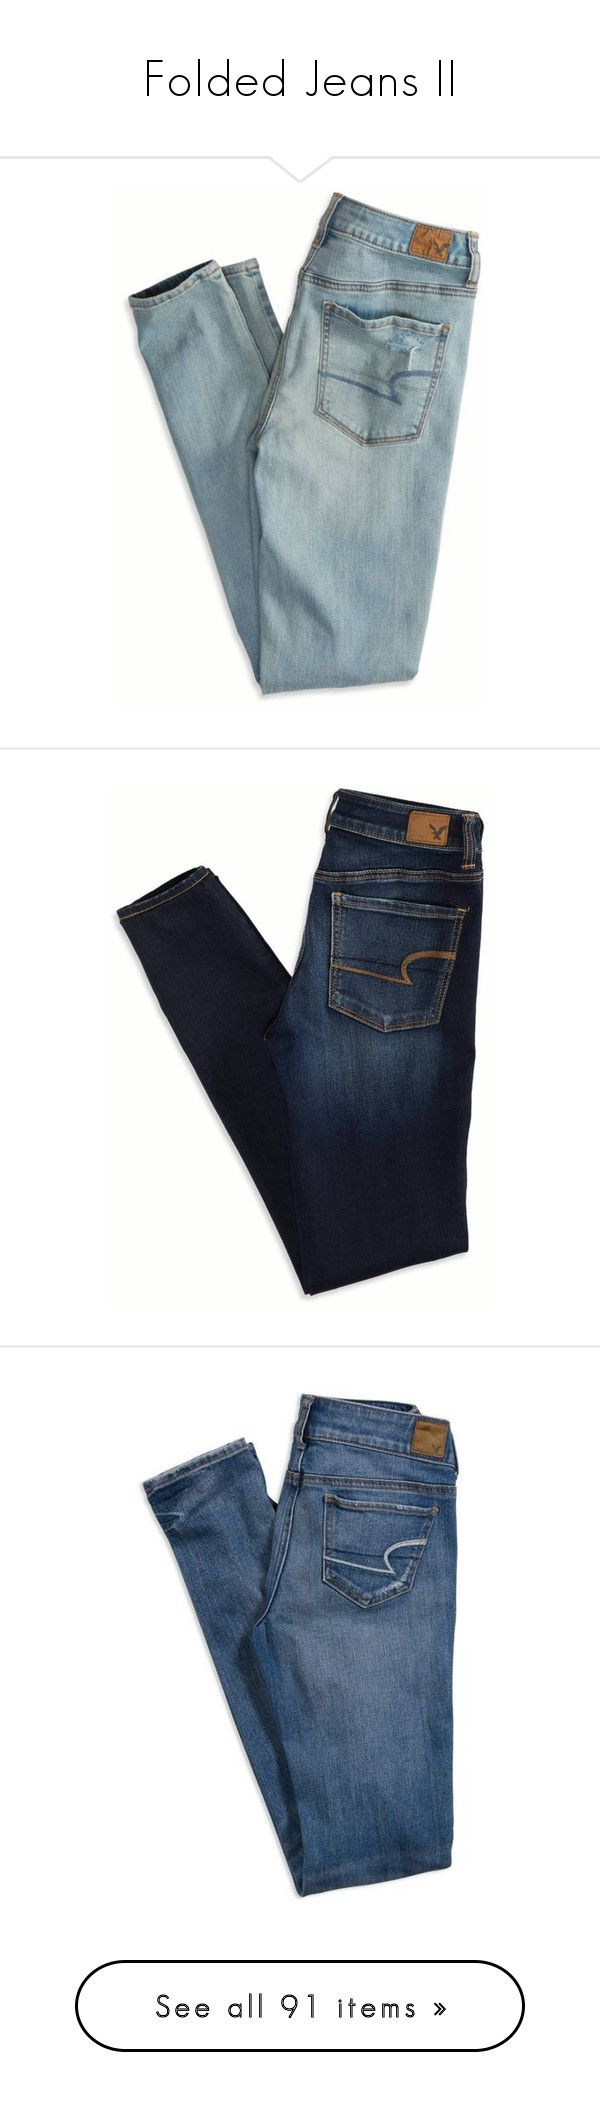 """""""Folded Jeans II"""" by bitbyacullen ❤ liked on Polyvore featuring jeans, pants, bottoms, trousers, american eagle outfitters, folded, pantalones, american eagle outfitters skinny jeans, american eagle outfitters jeans and blue skinny jeans"""